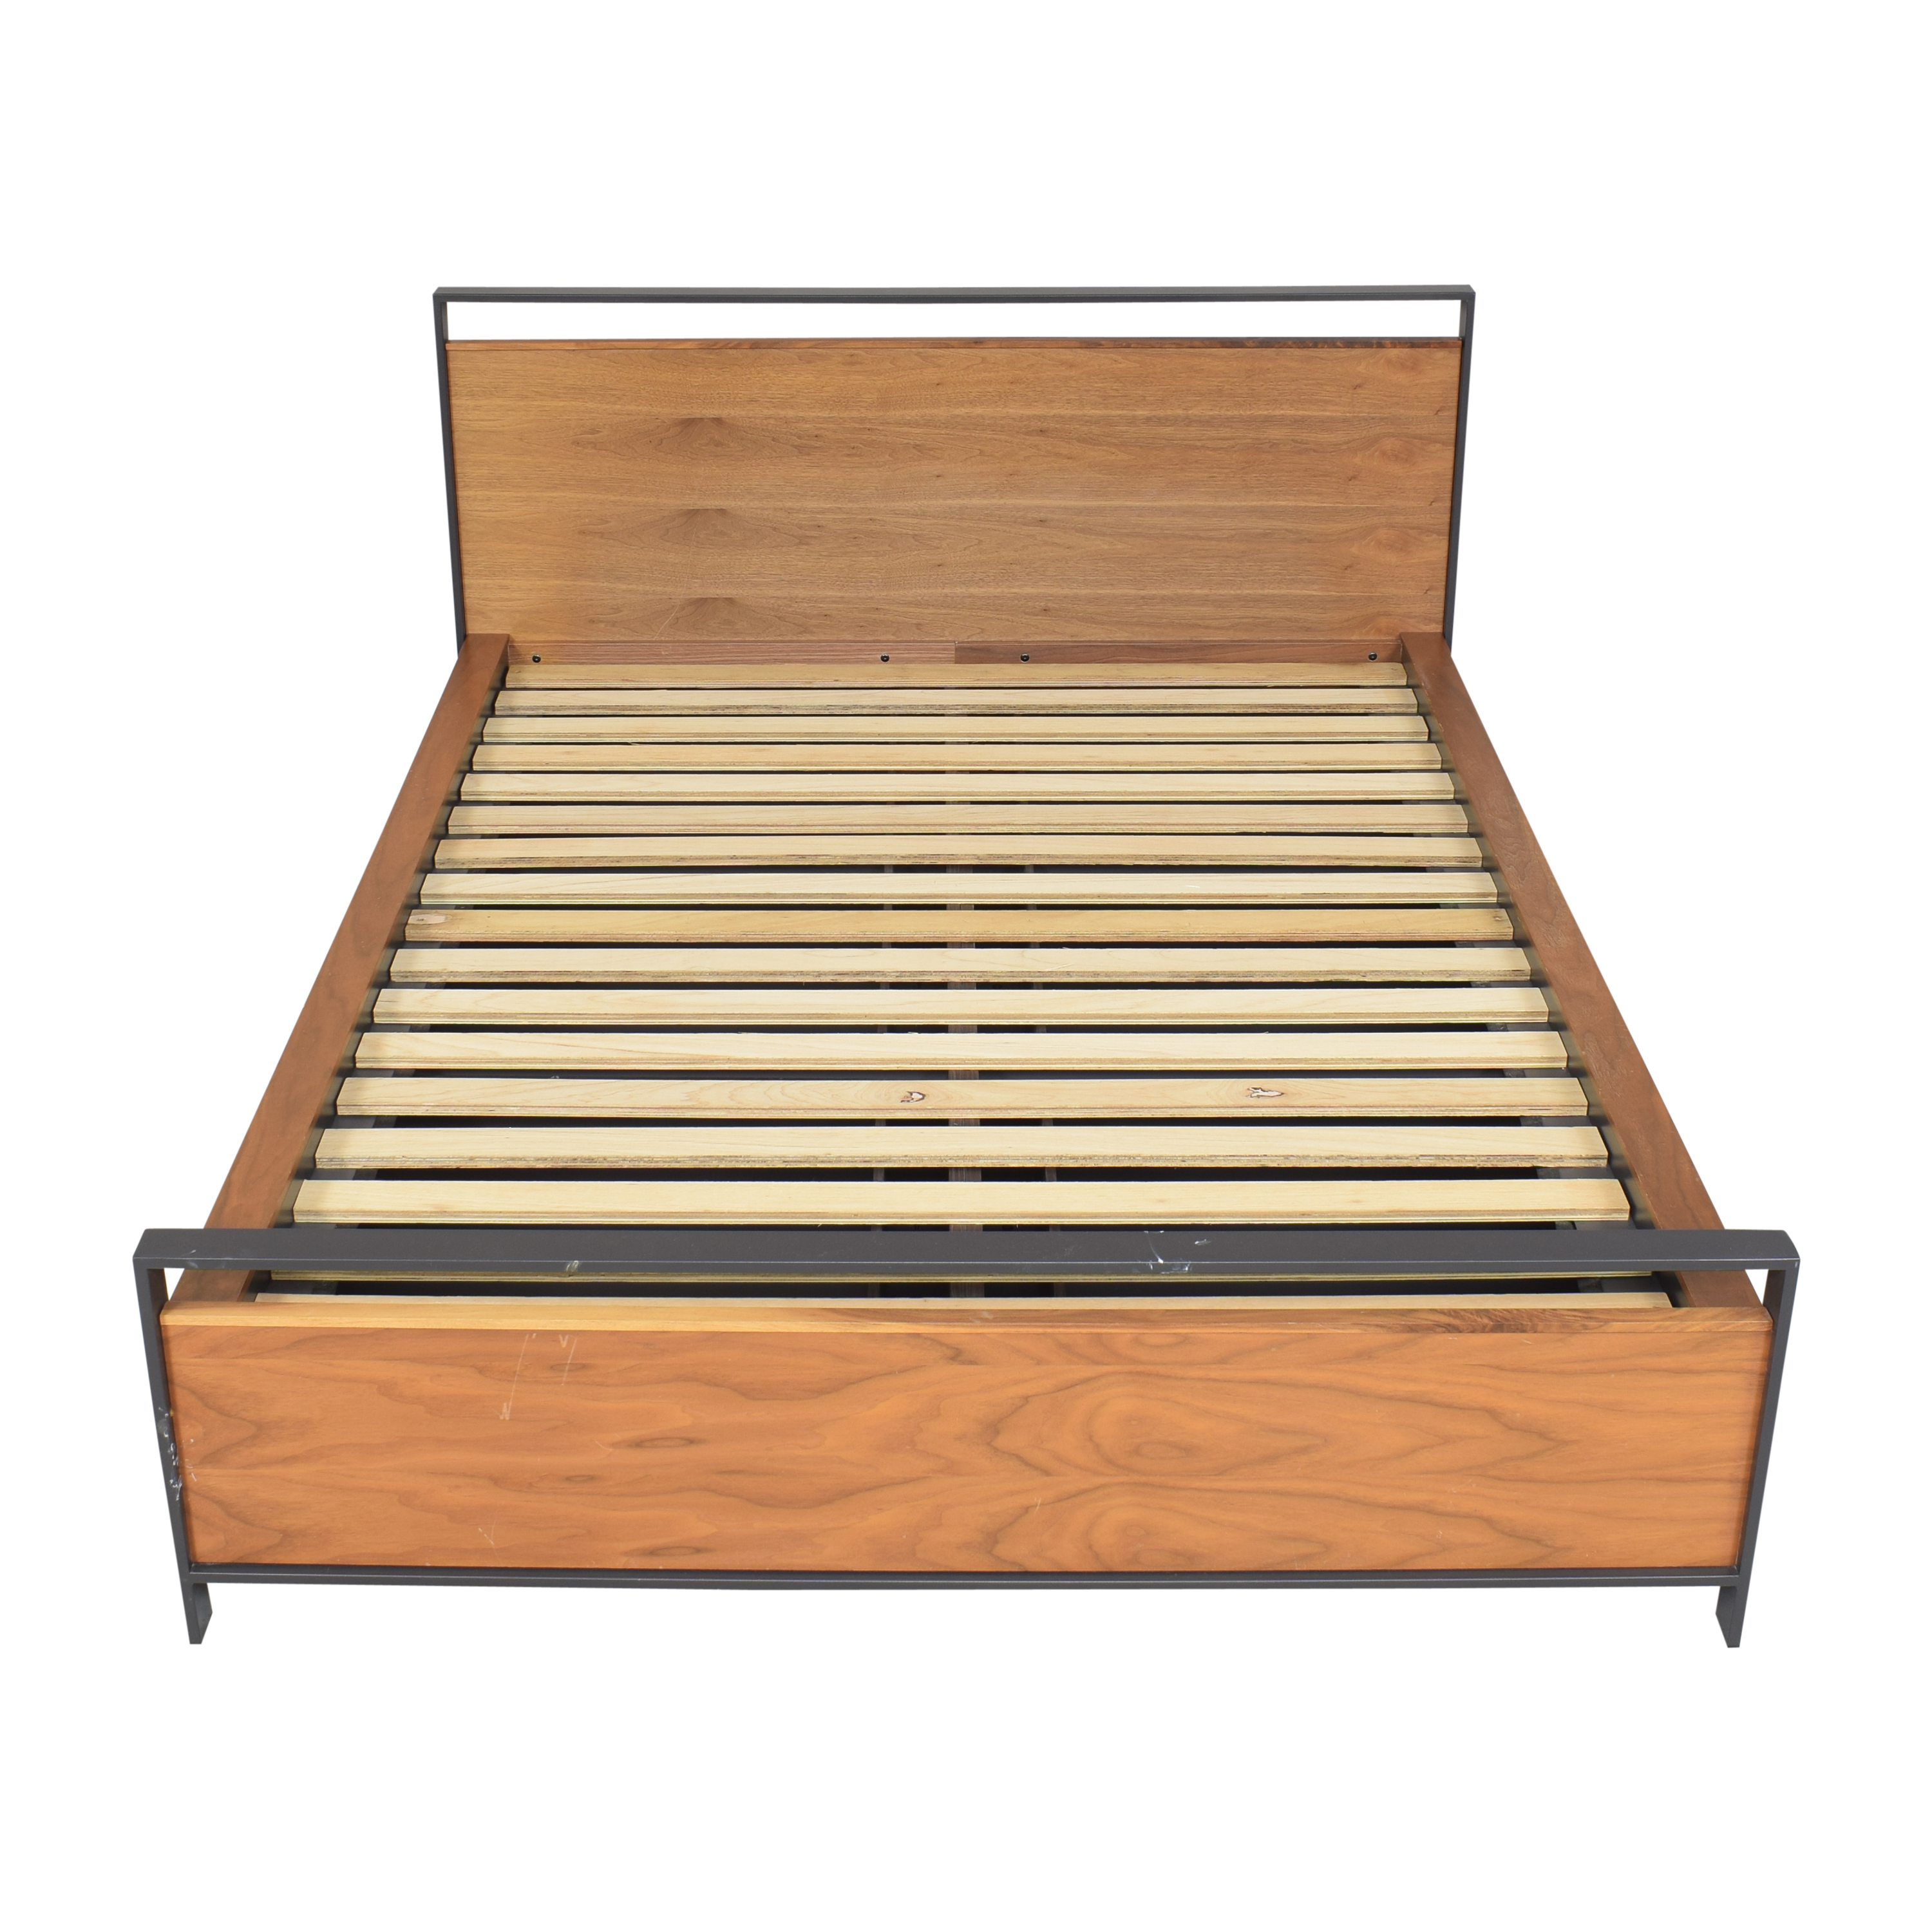 Crate & Barrel Bowery Queen Storage Bed / Beds